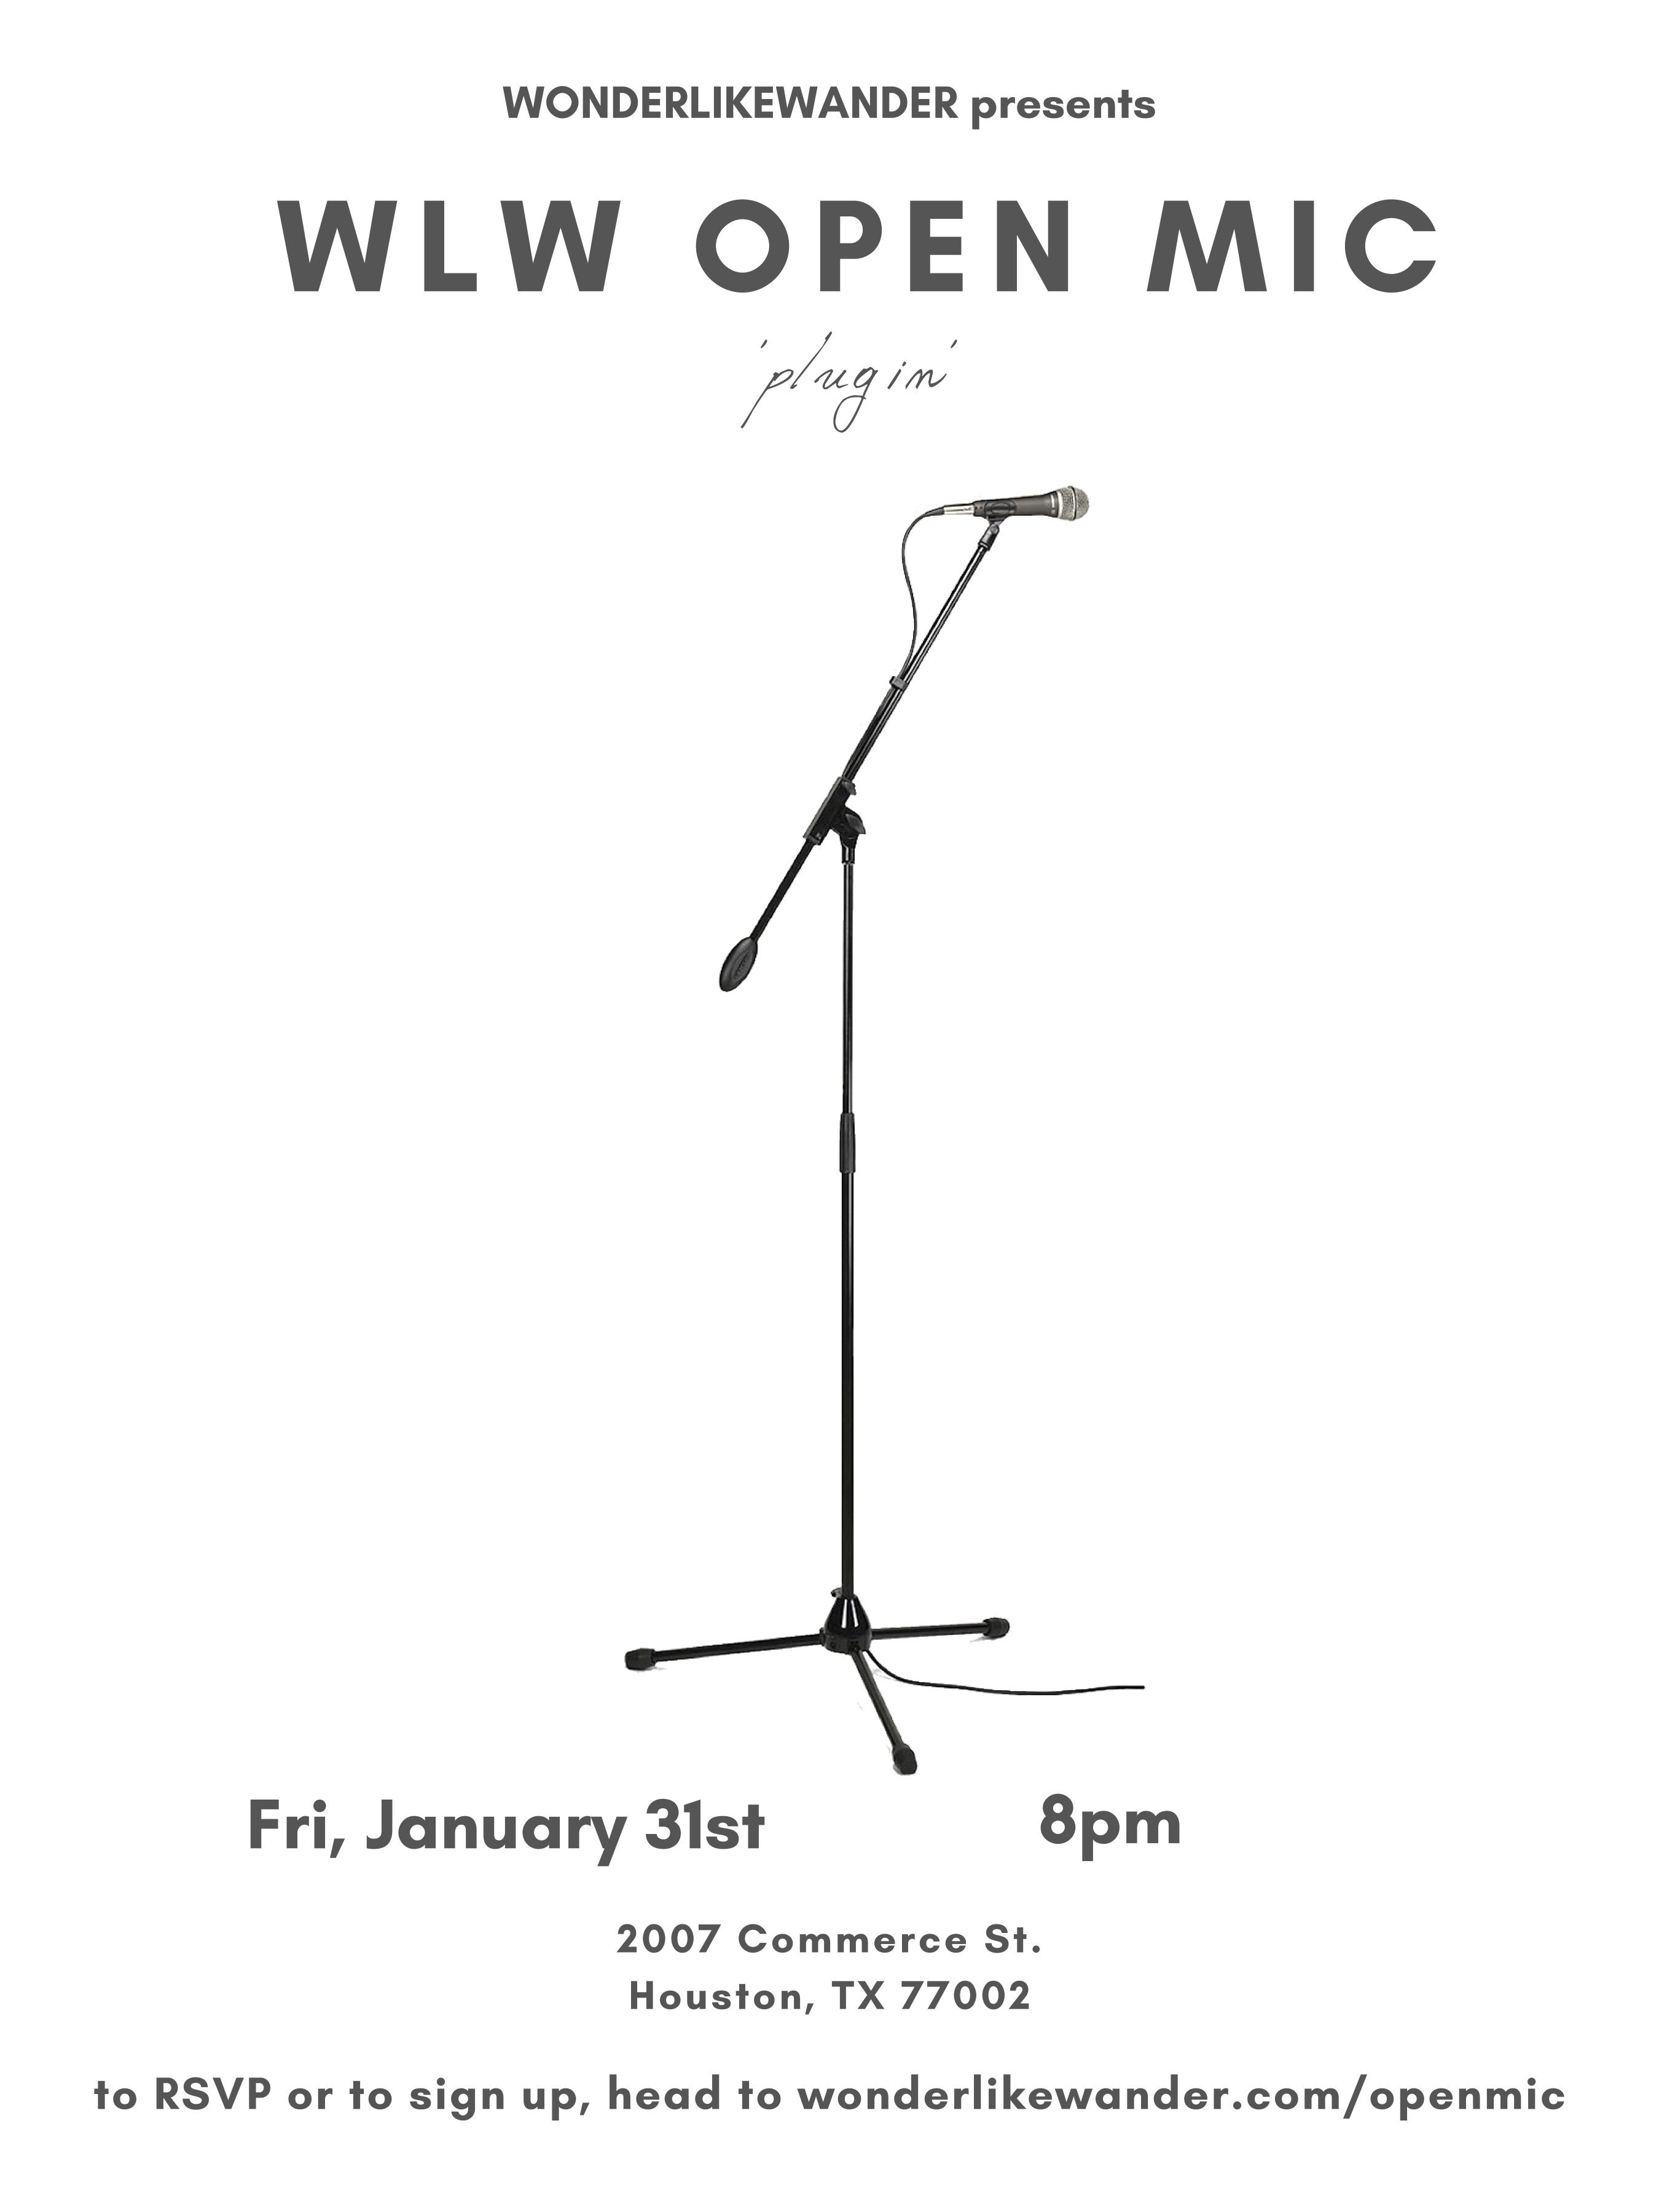 WLW Open Mic